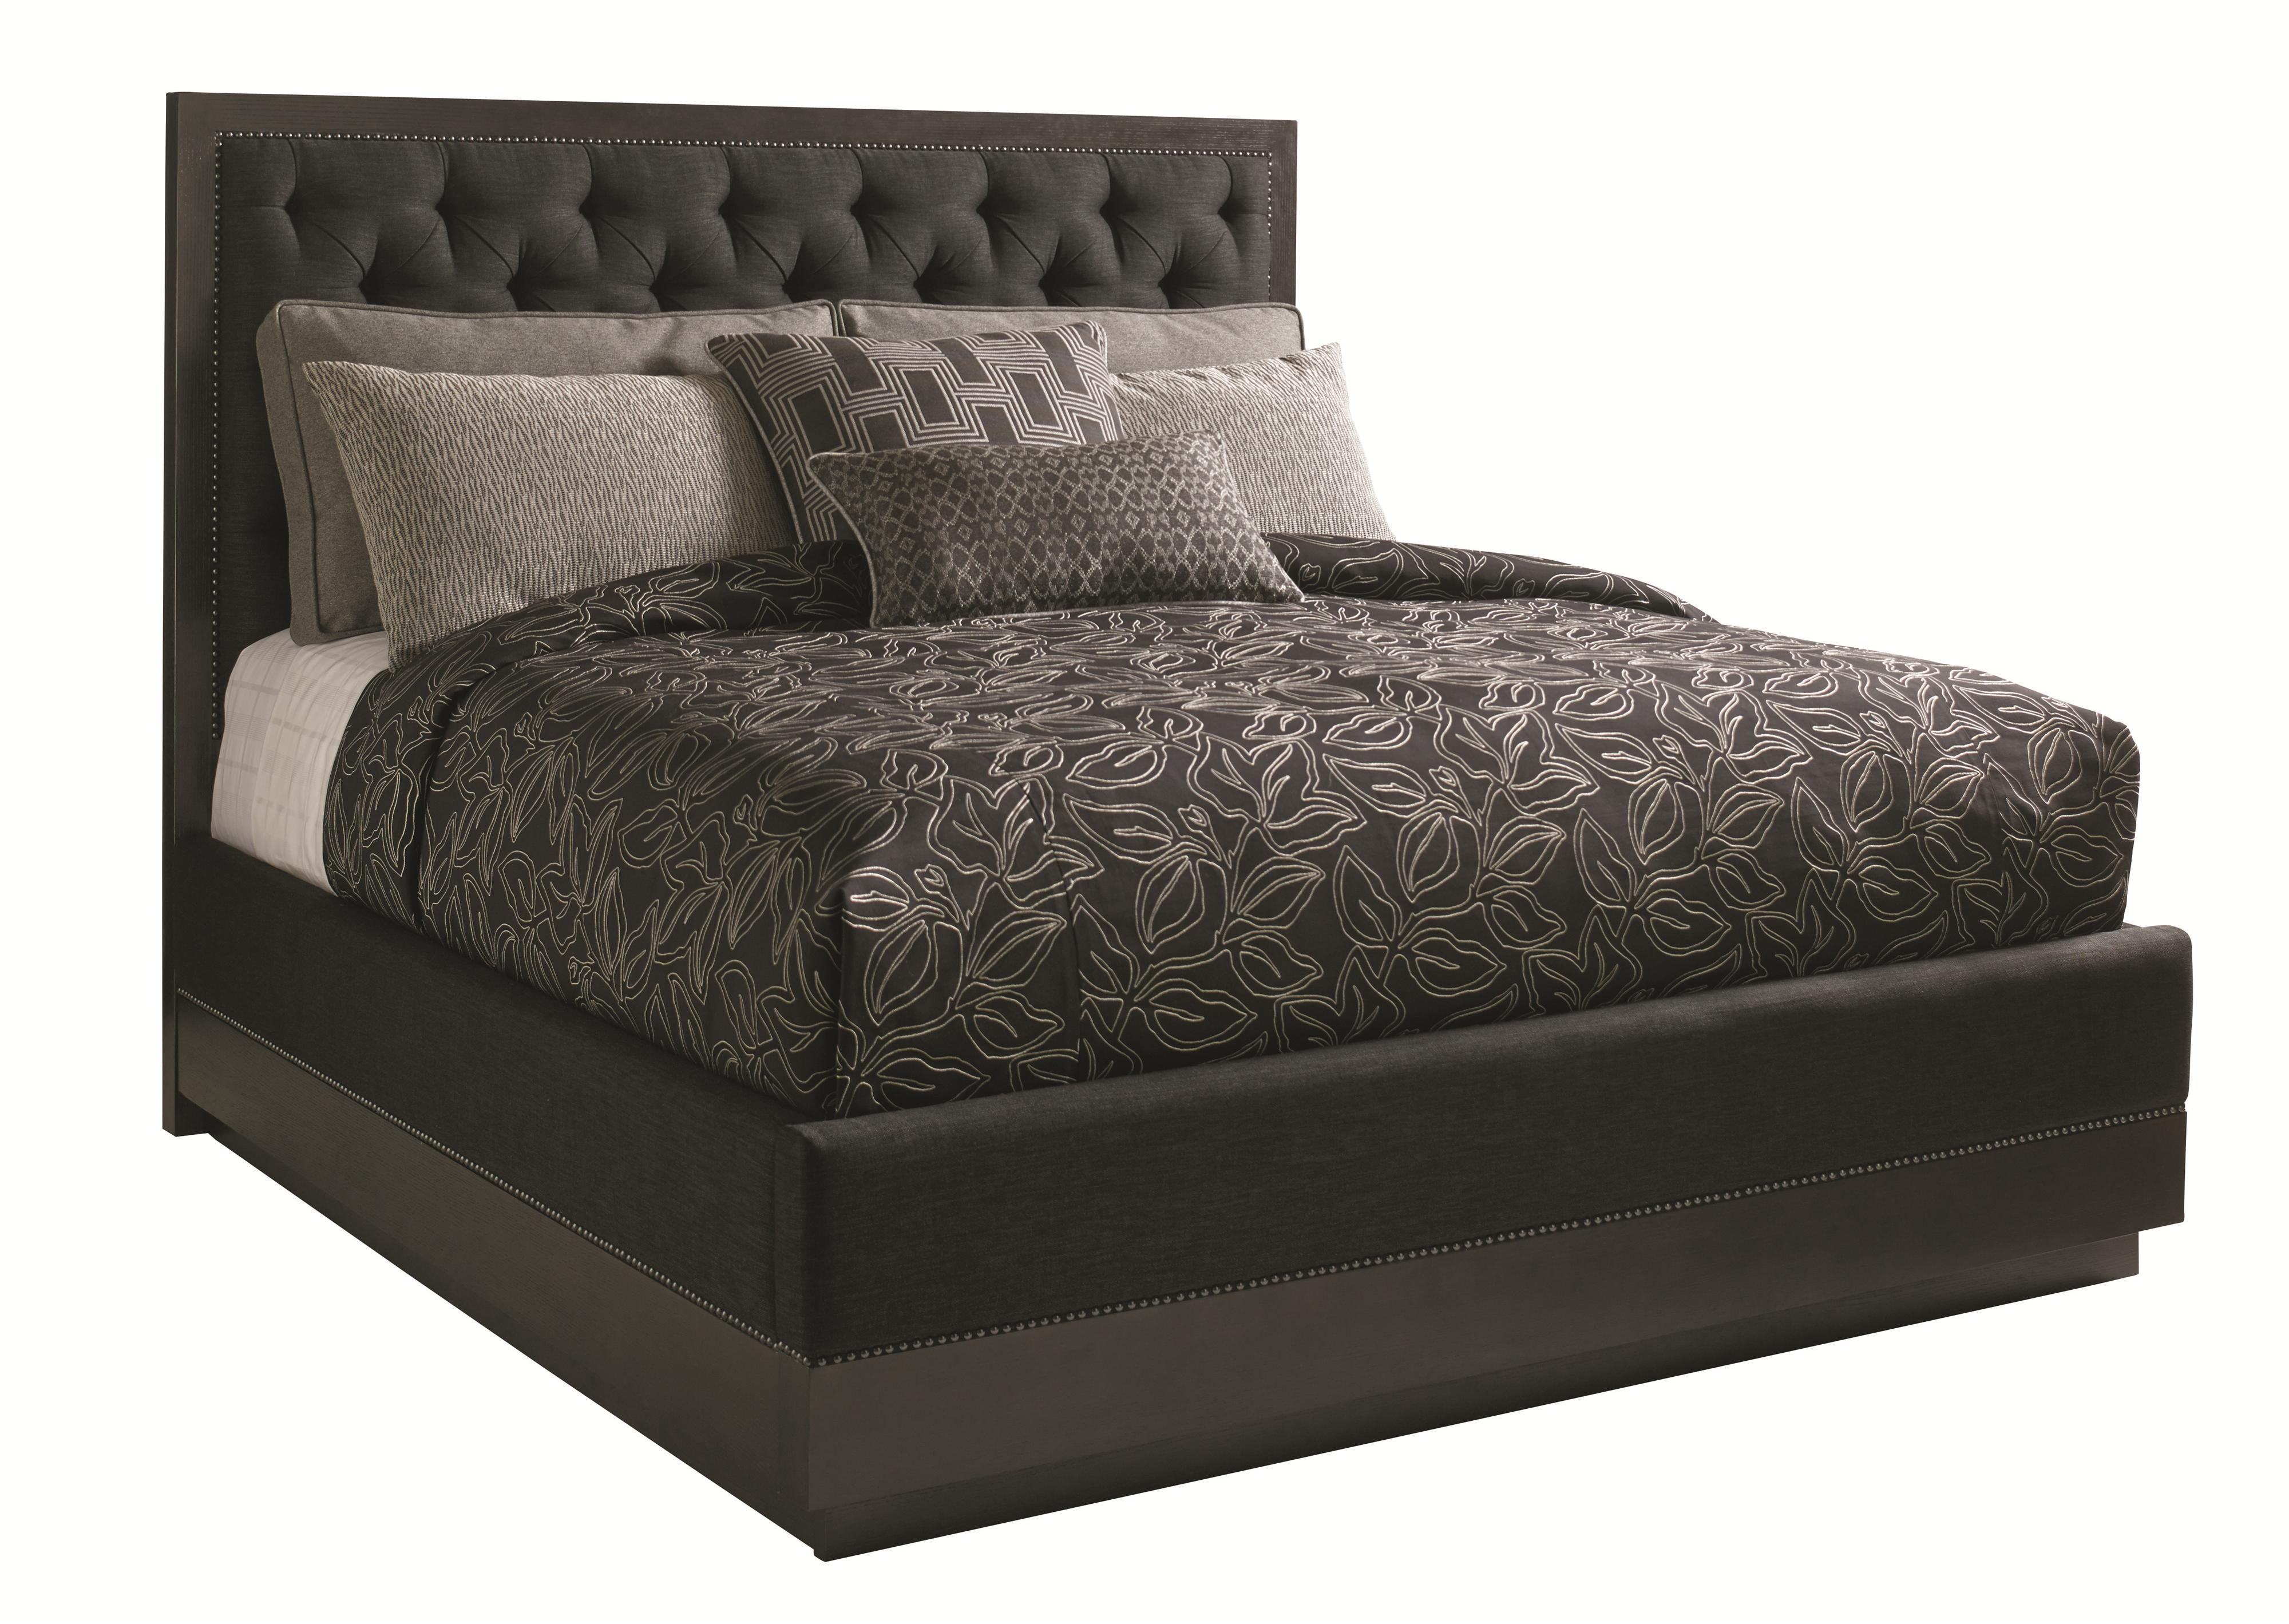 Carrera Complete 6/0 Maranello Upholstered Bed by Lexington at Johnny Janosik